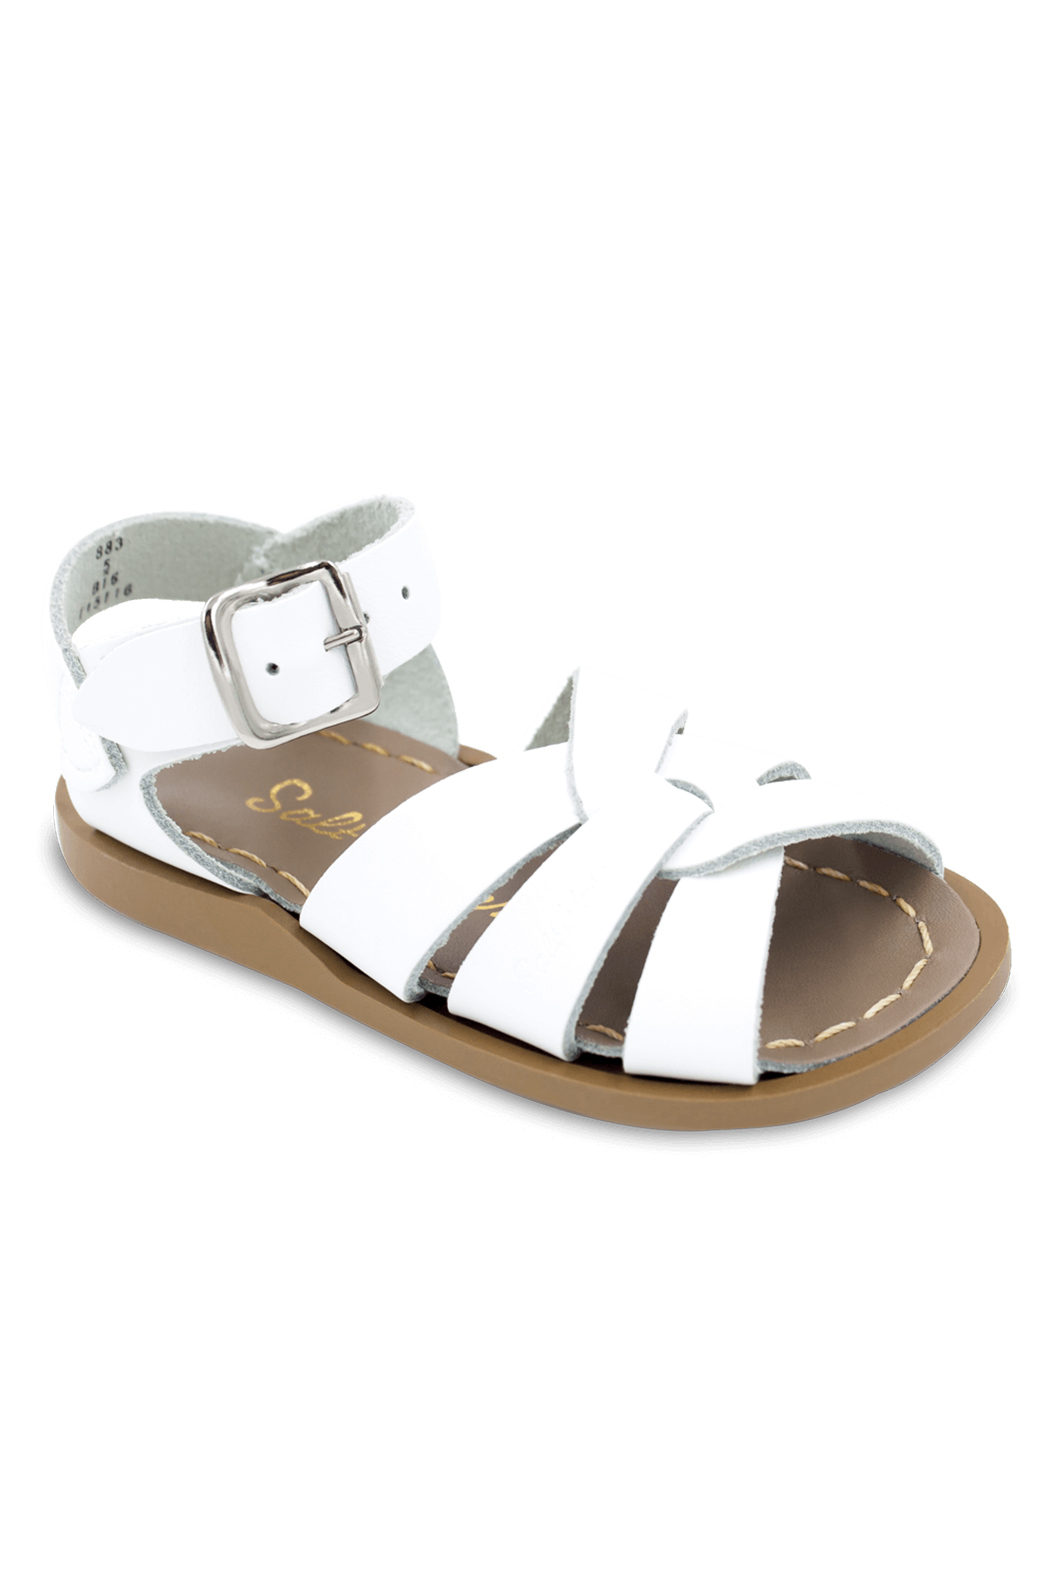 Hoy Shoes Salt Water Sandals Big Kid/Youth - Front Cropped Image